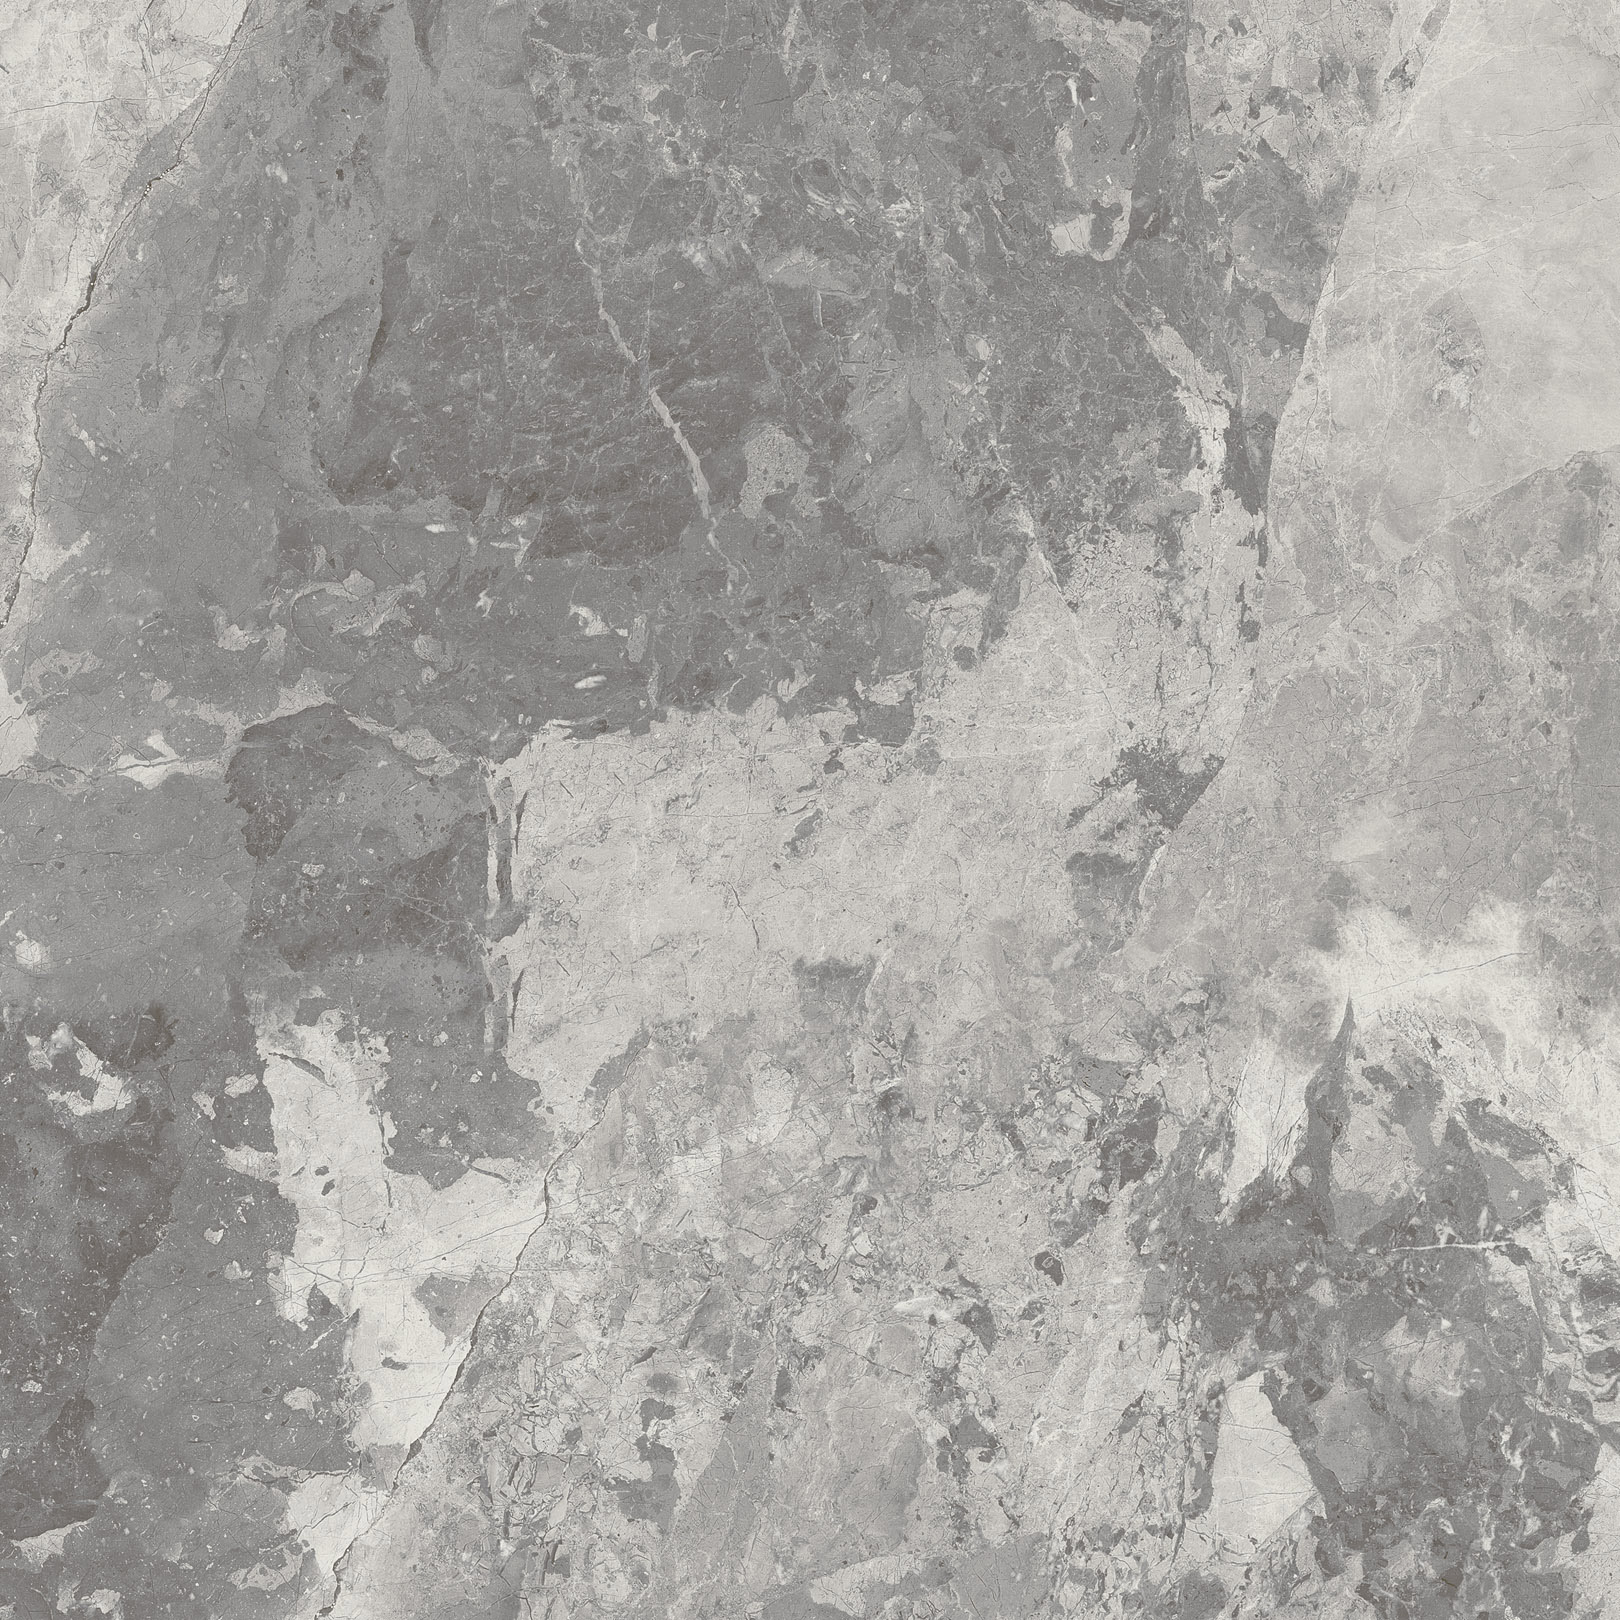 Introducing pietra reale a new marble effect porcelain for Carrelage gris brillant sol